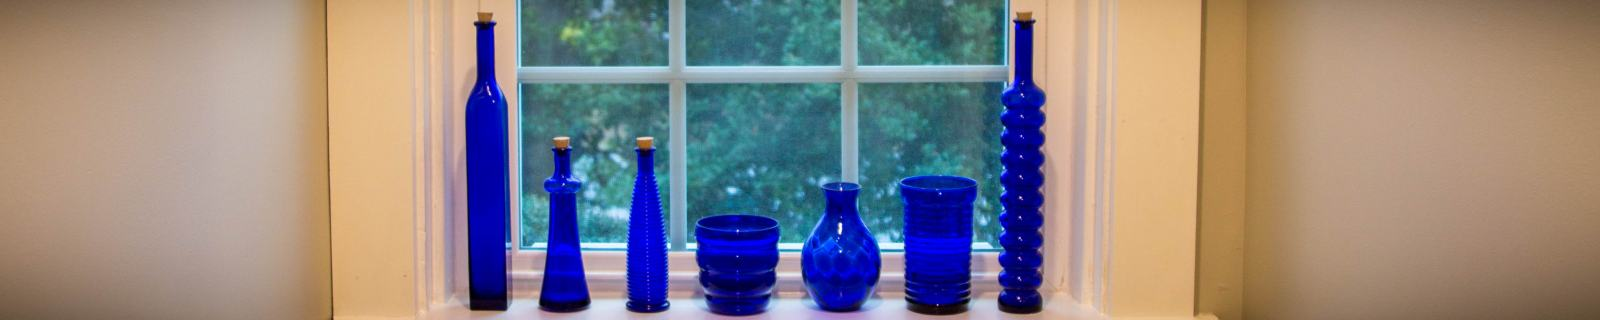 blue glass bottles along the sill of a replacement window in a remodeled bathroom